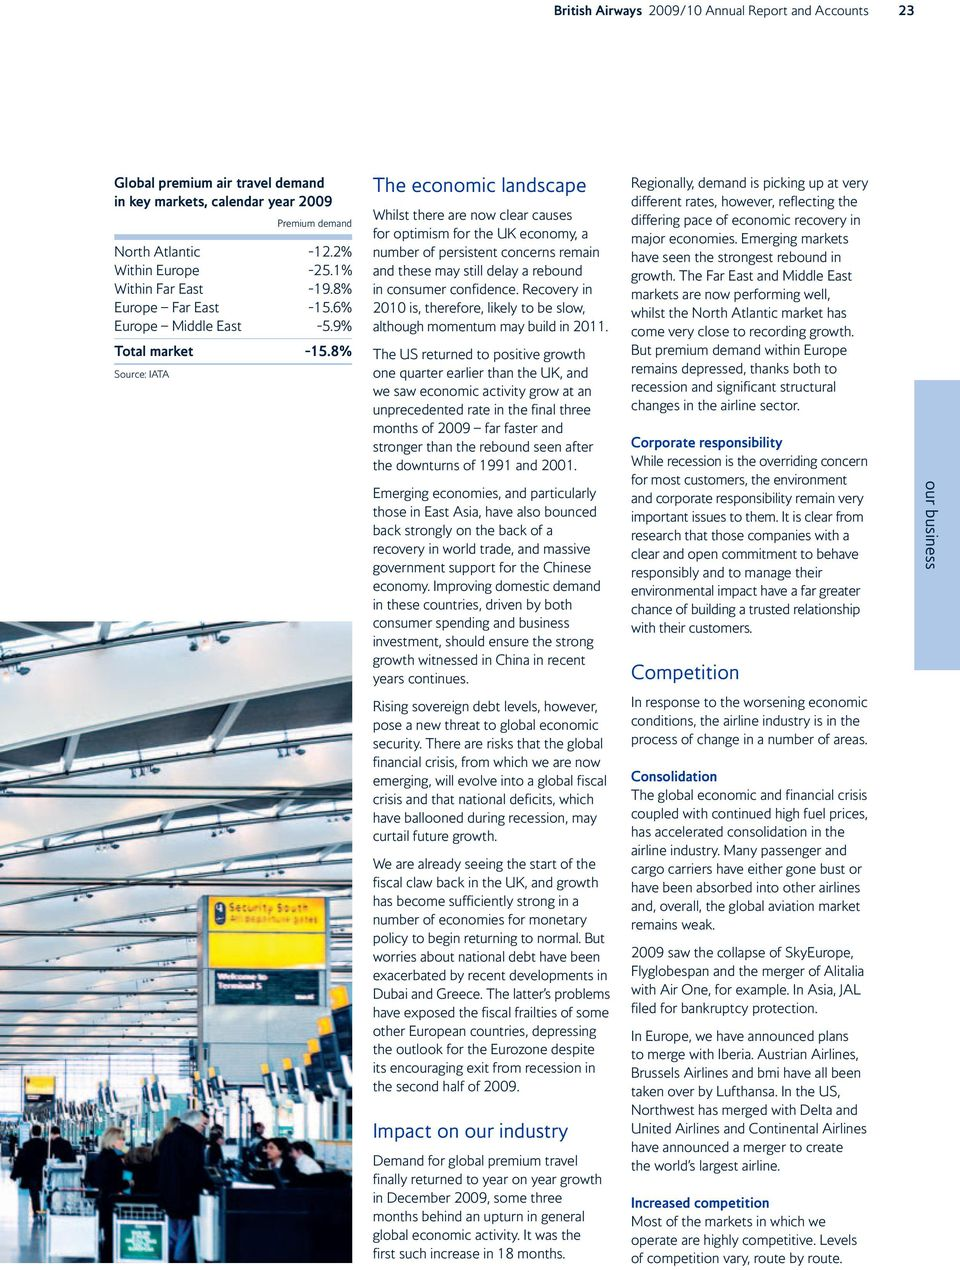 8% Source: IATA The economic landscape Whilst there are now clear causes for optimism for the UK economy, a number of persistent concerns remain and these may still delay a rebound in consumer